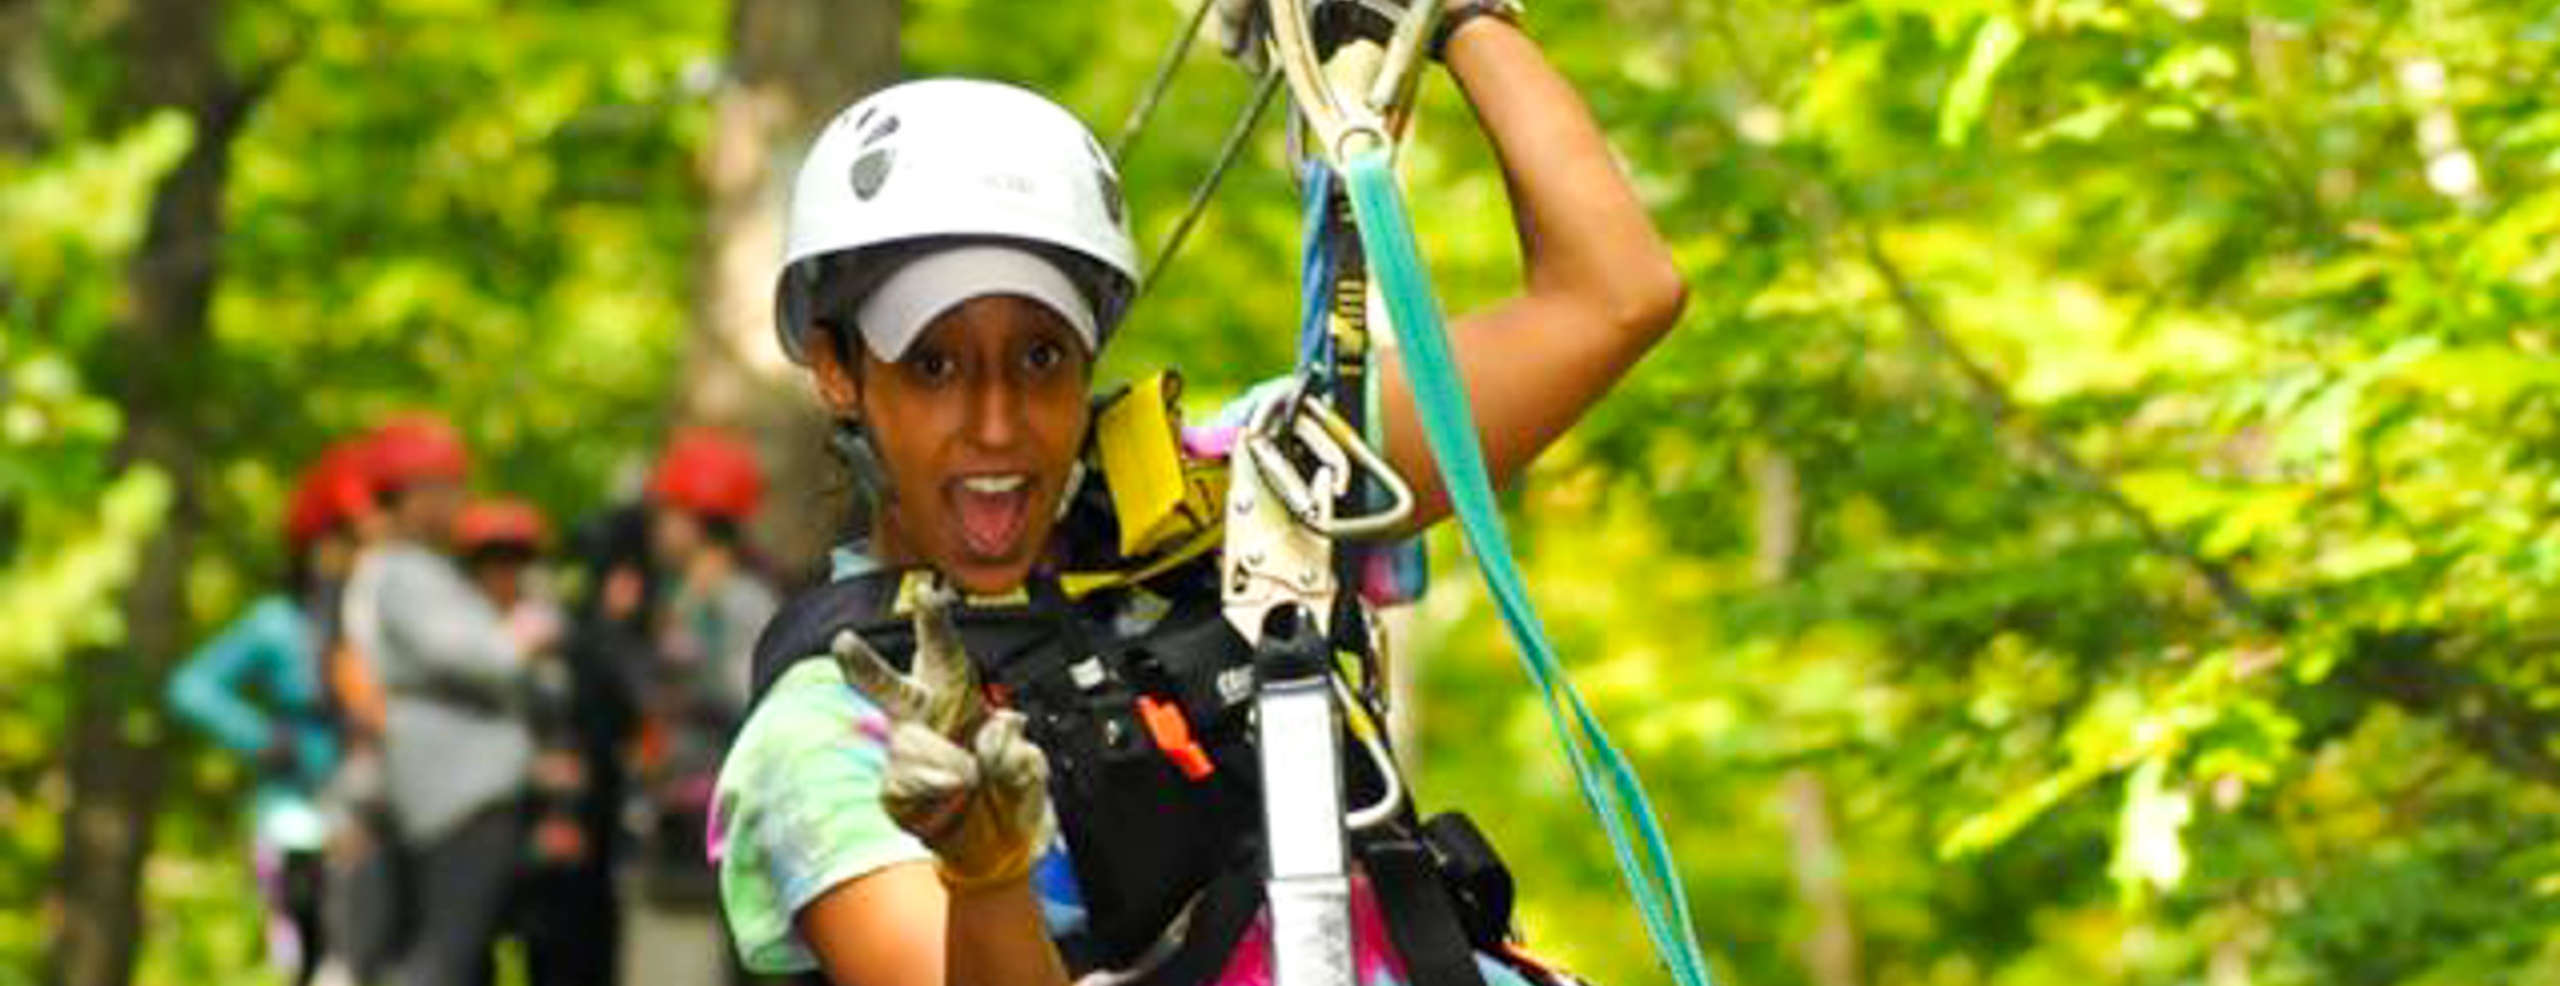 Woman ziplining in the forest